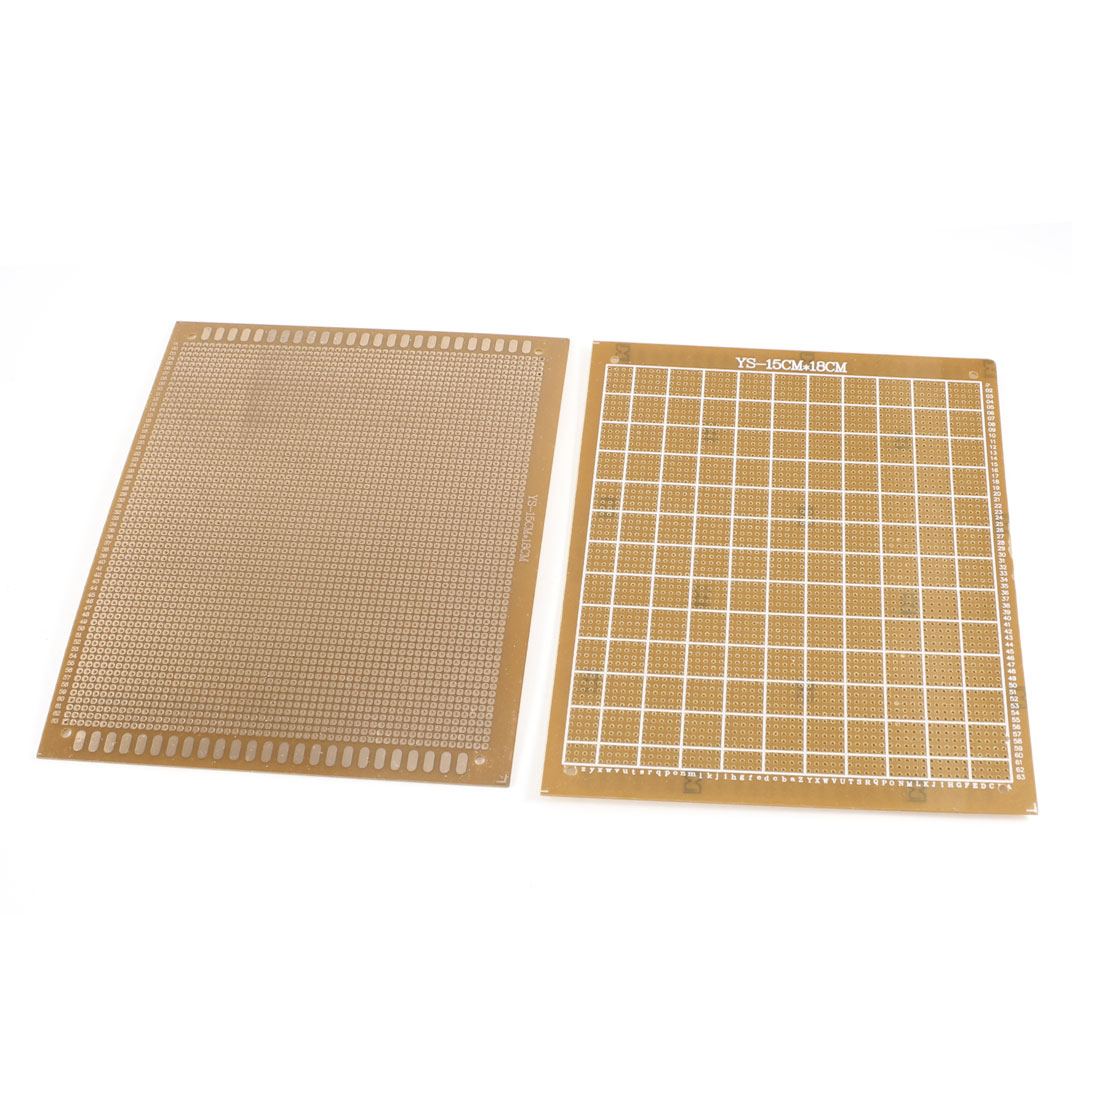 2 Pcs 15cm x 18cm Panel Universal Single Side Copper PCB Board Copper Tone